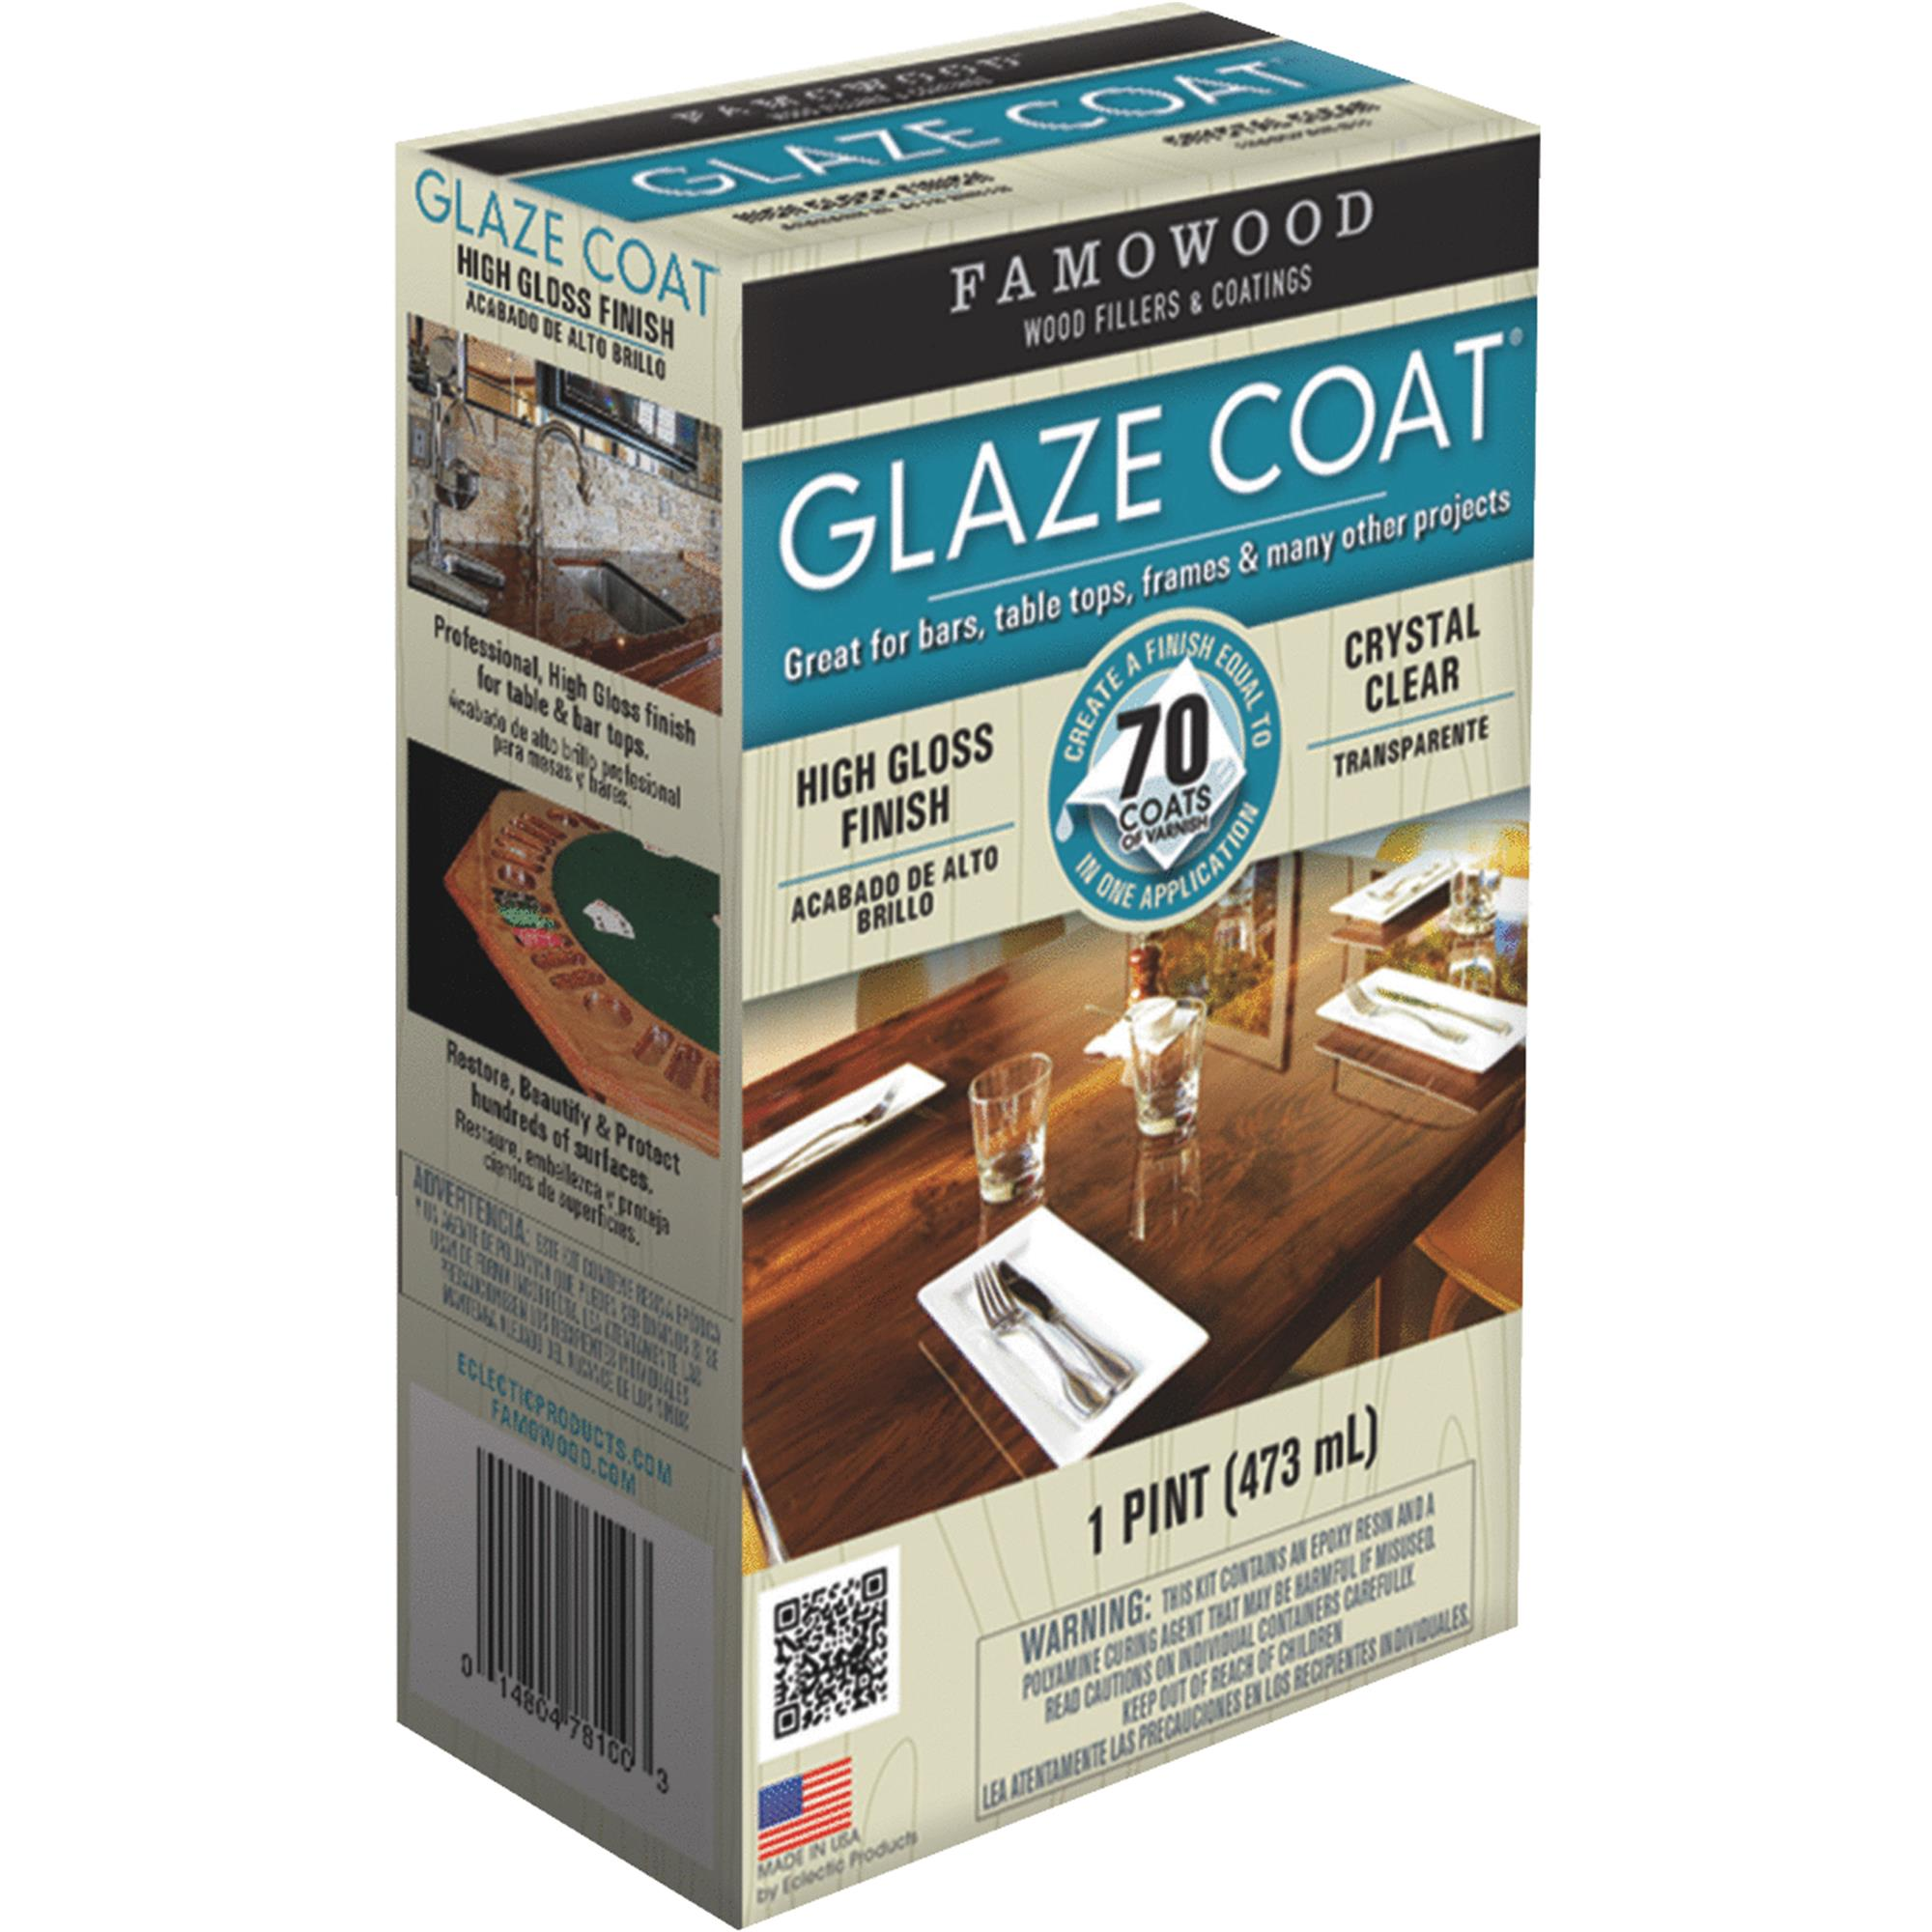 Famowood 5050060 1 Pint Crystal Clear Glaze Coatᅡᆴ High Gloss Epoxy Coating